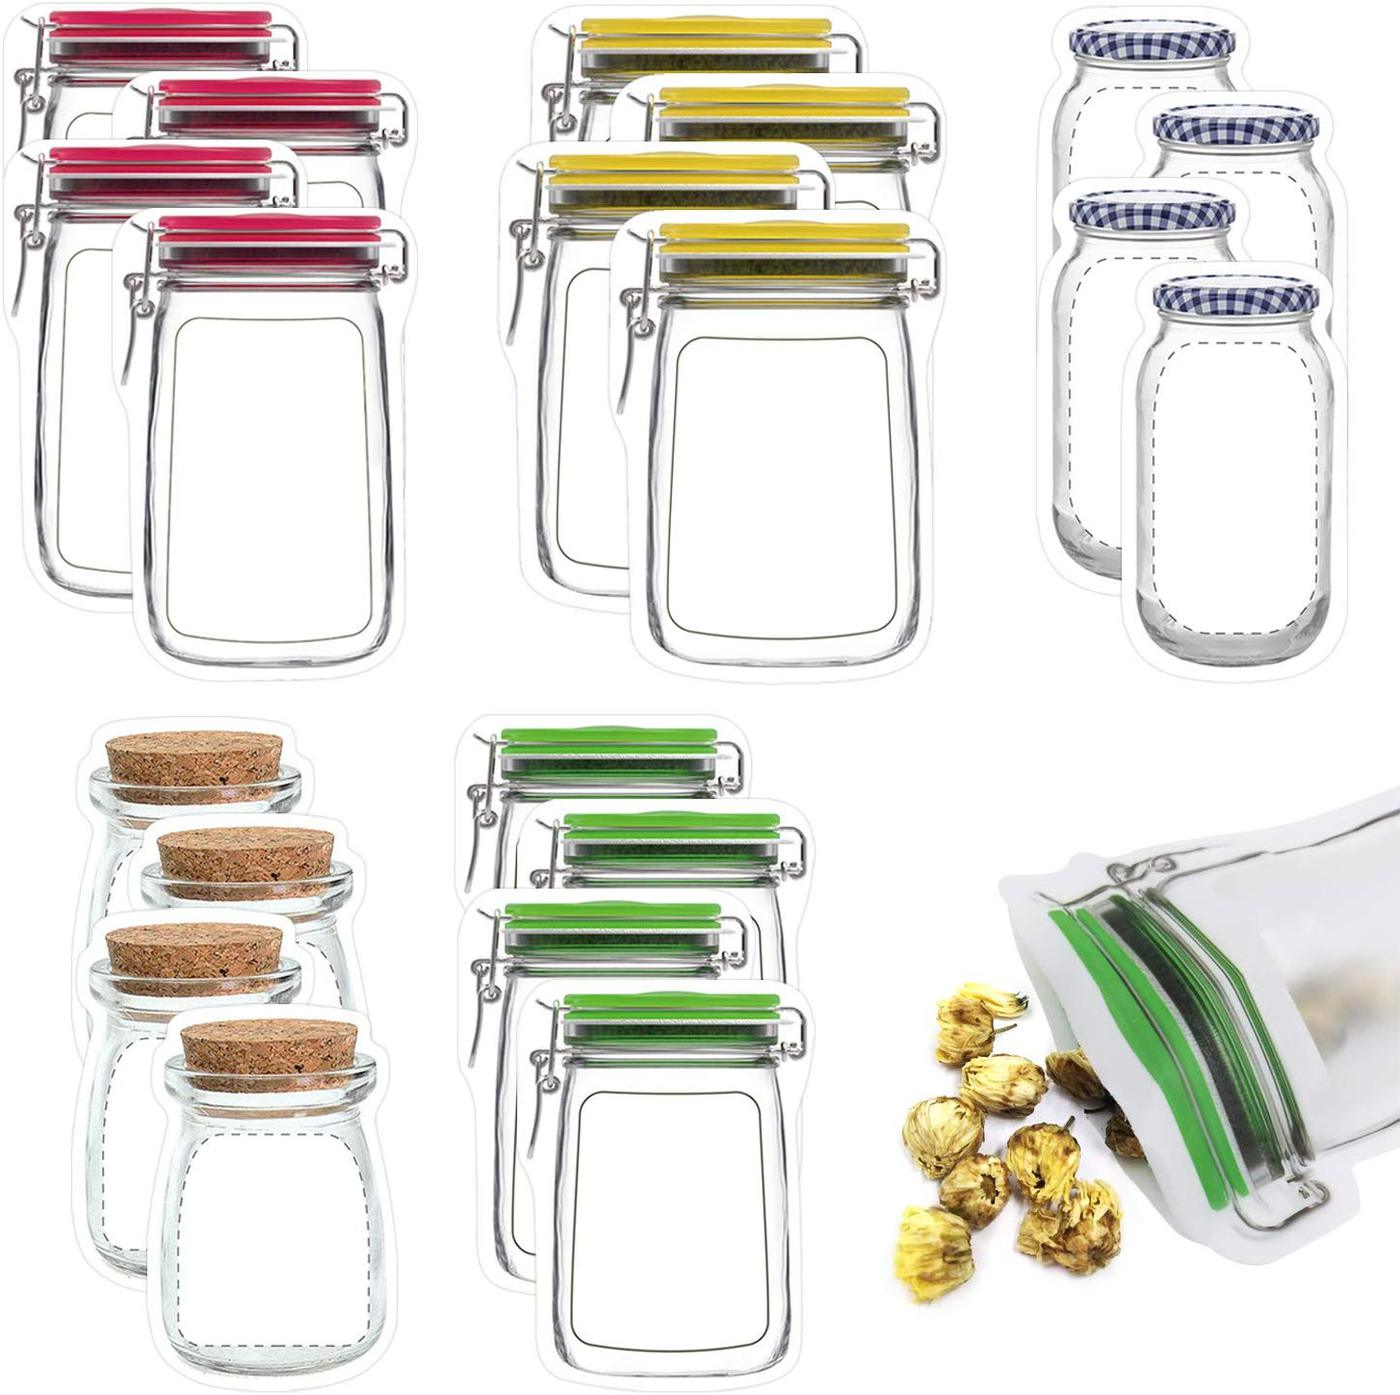 Several jar shaped plastic zipper bags